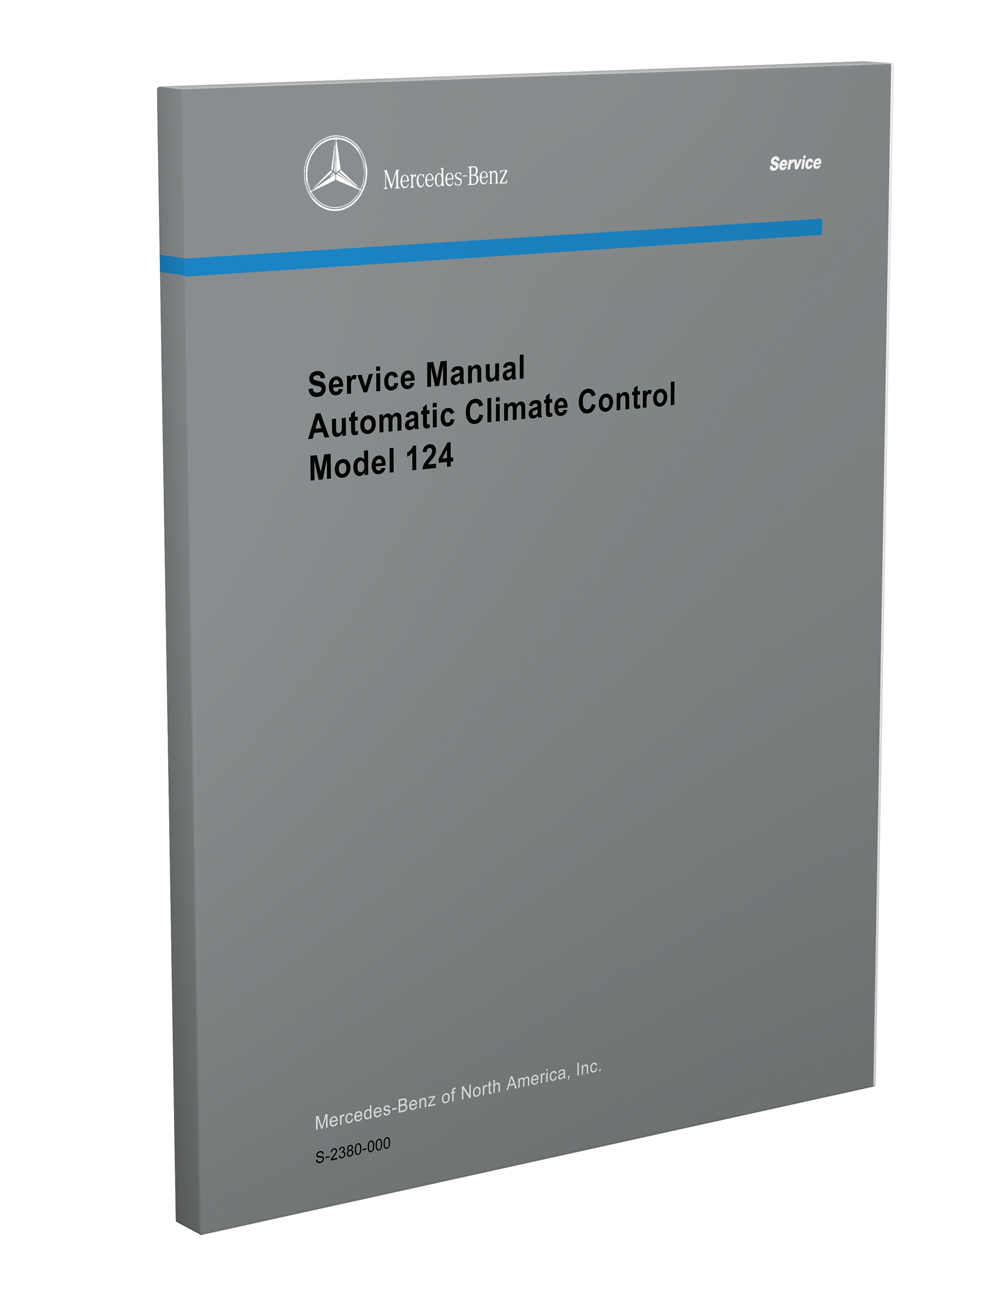 1986-92 Mercedes 124 A/C & Heater Reprint Repair Manual